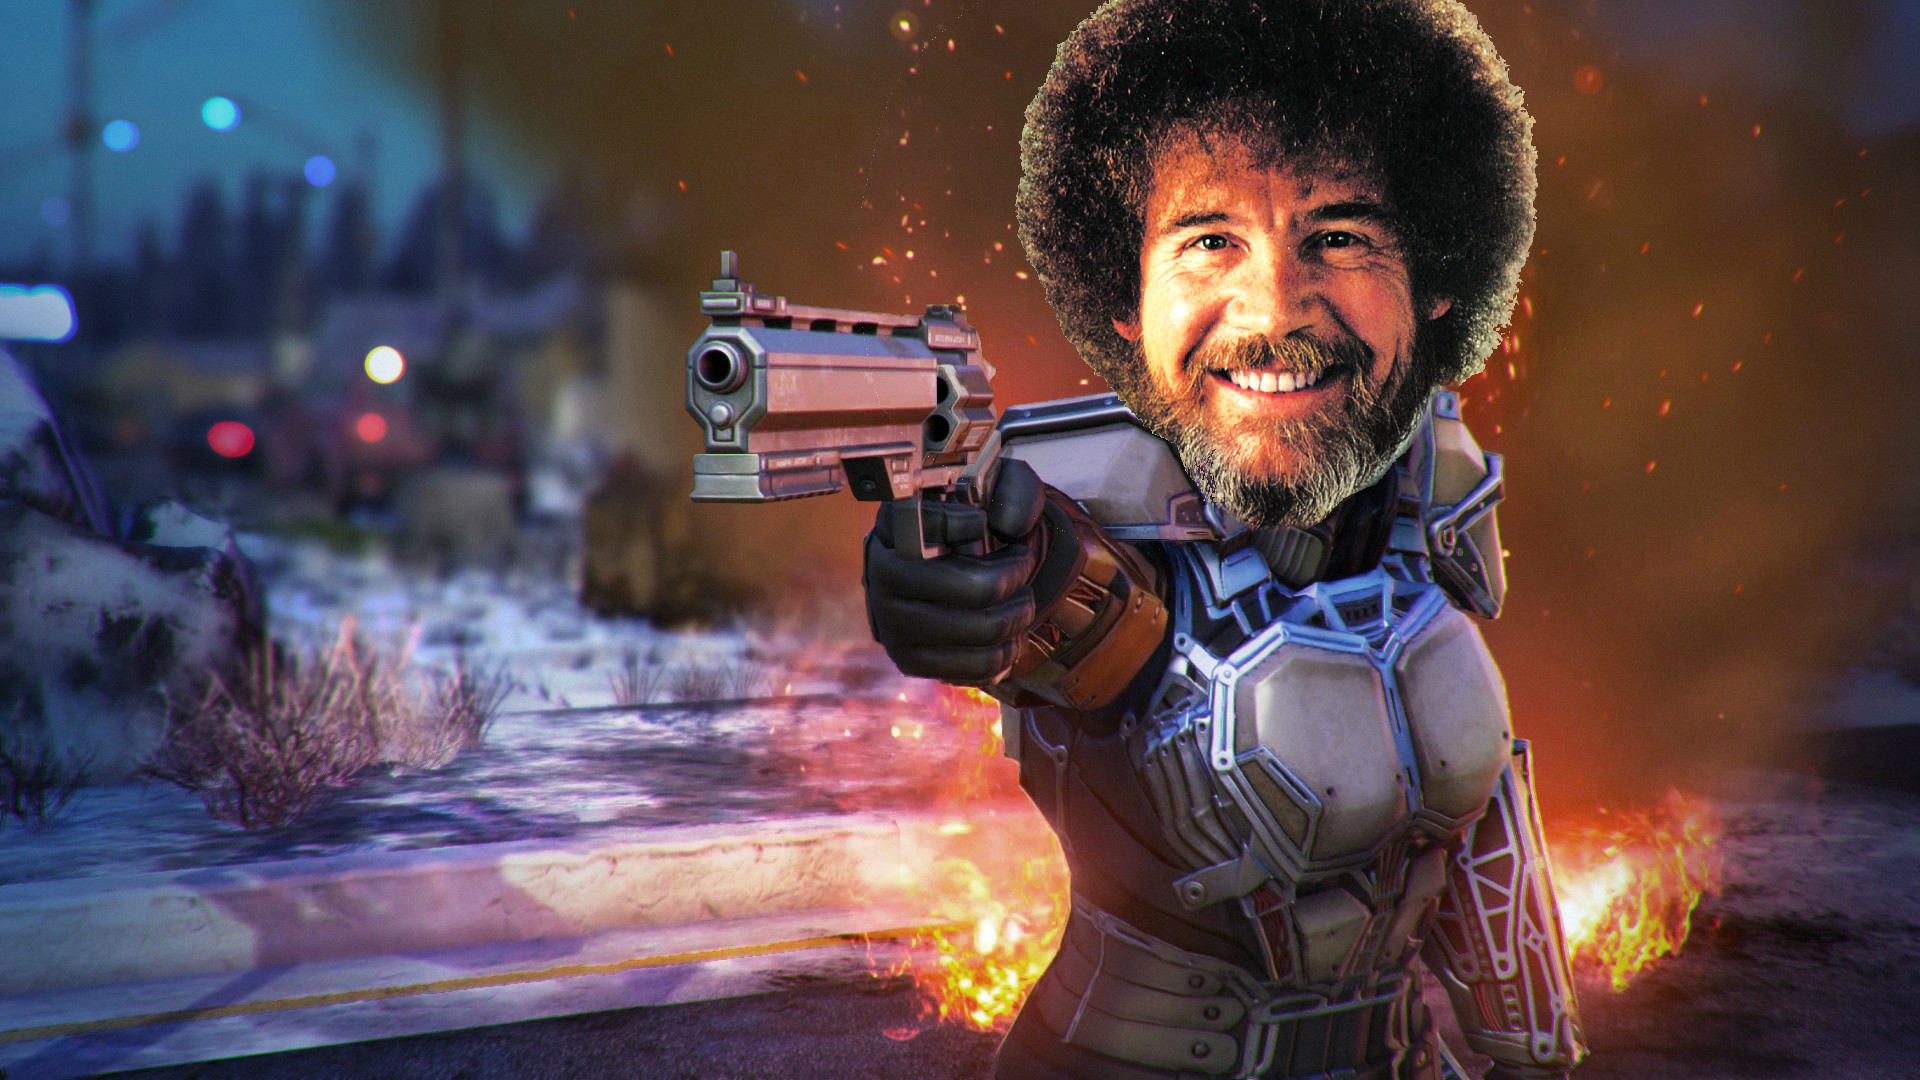 Res: 1920x1080, Modder adds Bob Ross's voice to XCOM 2, and it's just so happy and wonderful